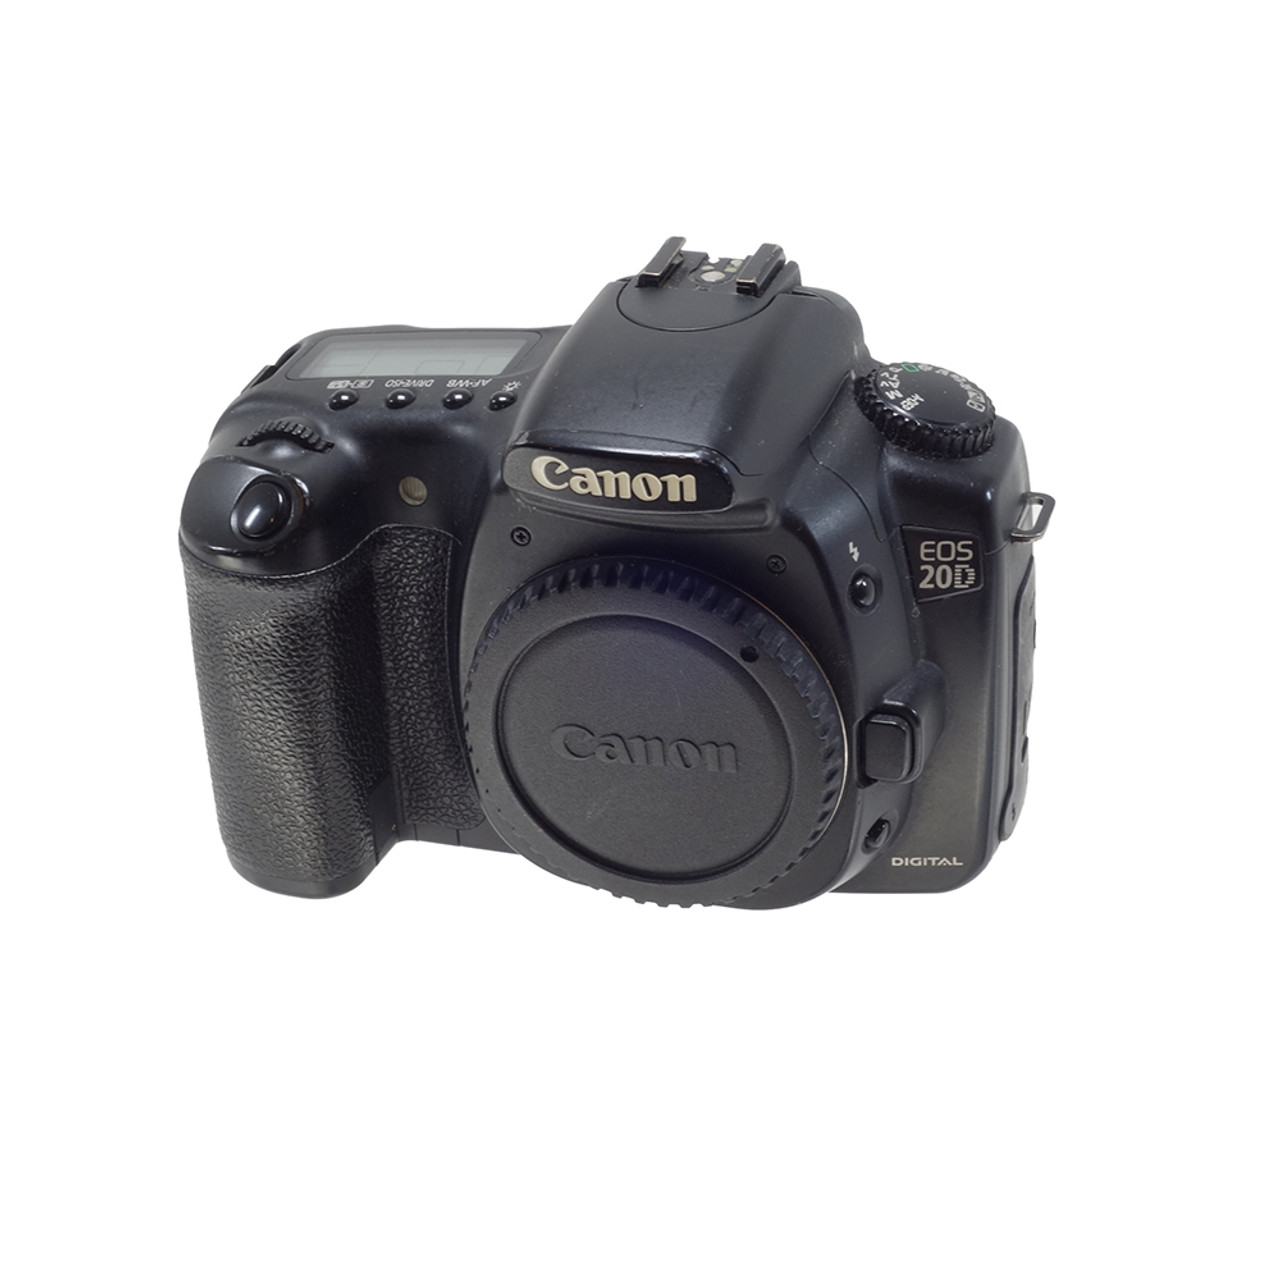 USED CANON EOS 20D